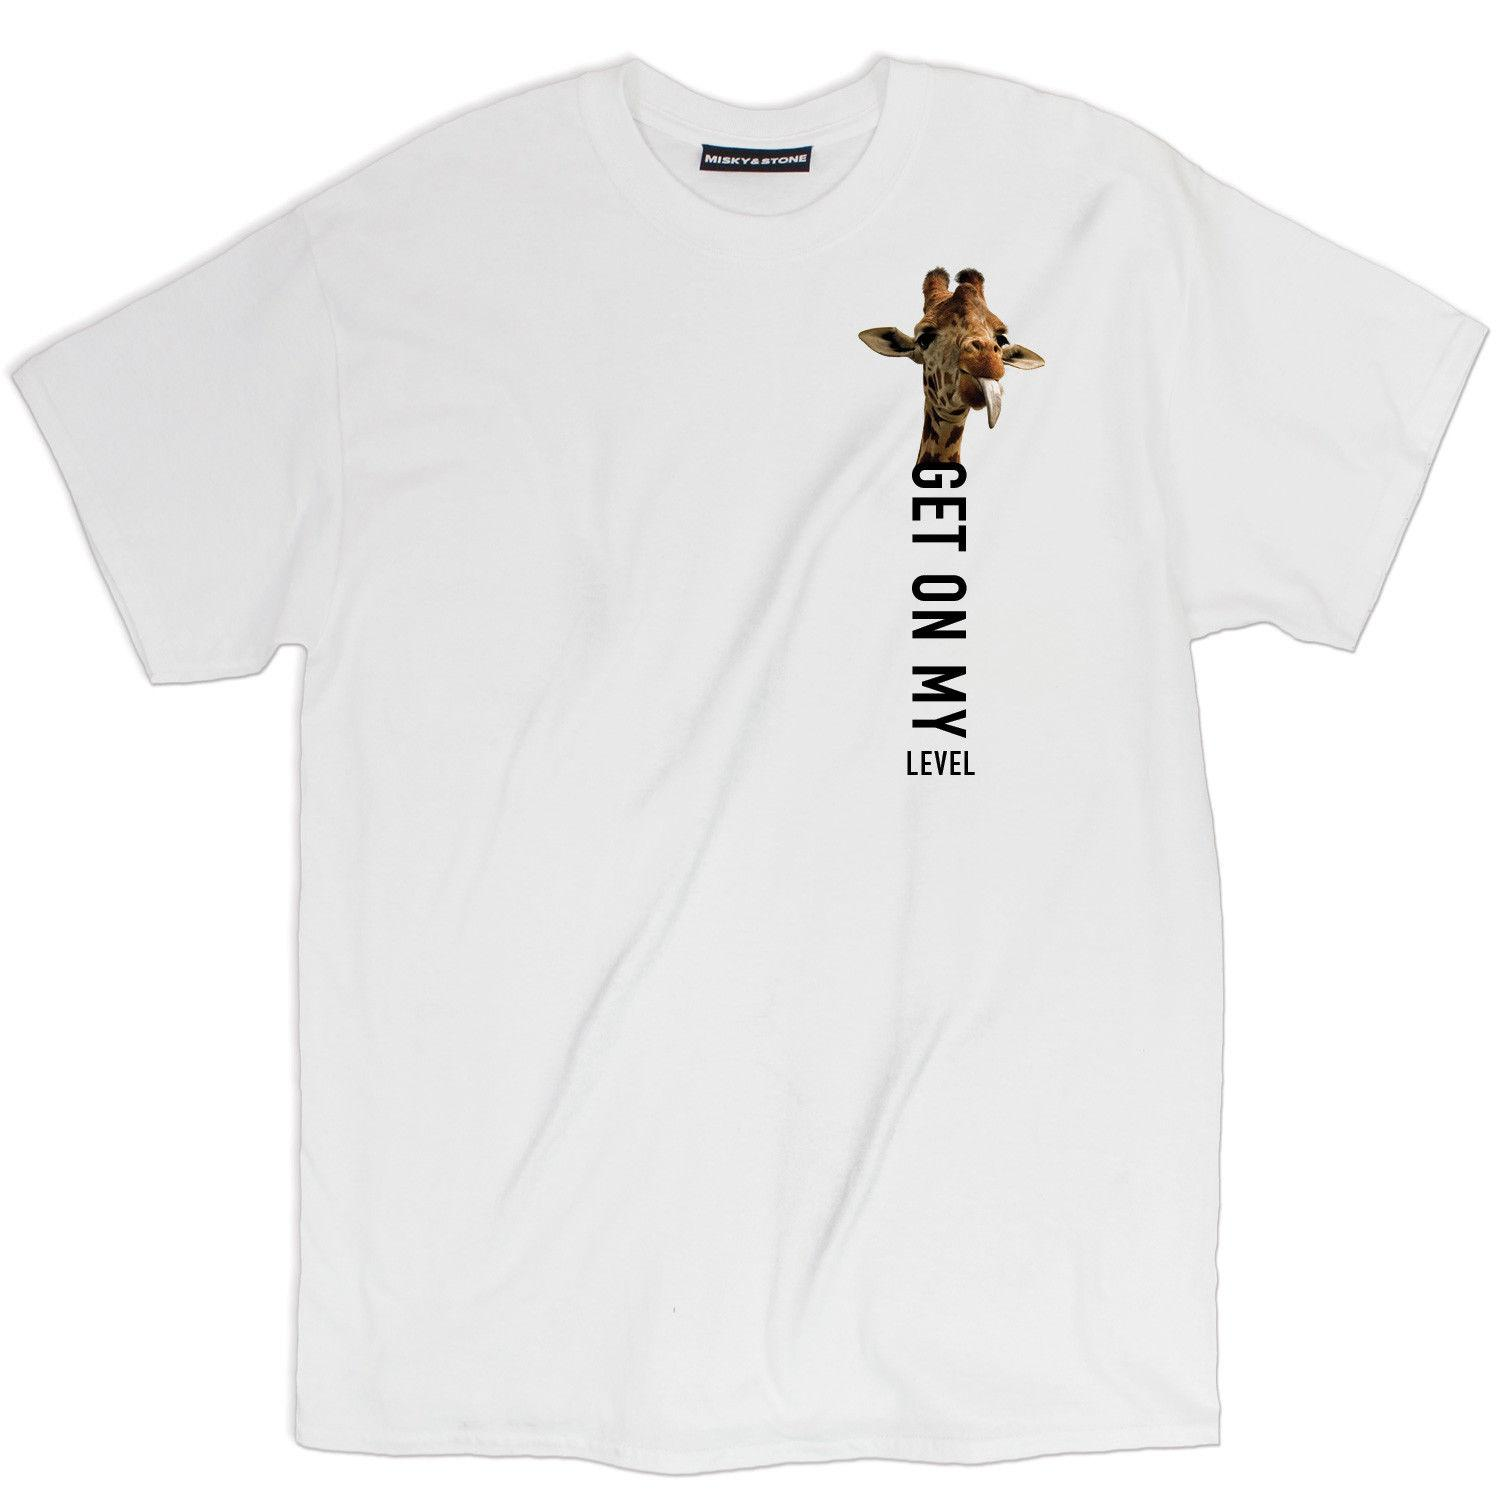 d161dacad Misky & Stone Get On My Level Funny Giraffe Left Chest Loose Fit Tee S 3xl  Comfortable T Shirt Casual Short Sleeve Print The Who T Shirt T Shirts  Designs ...